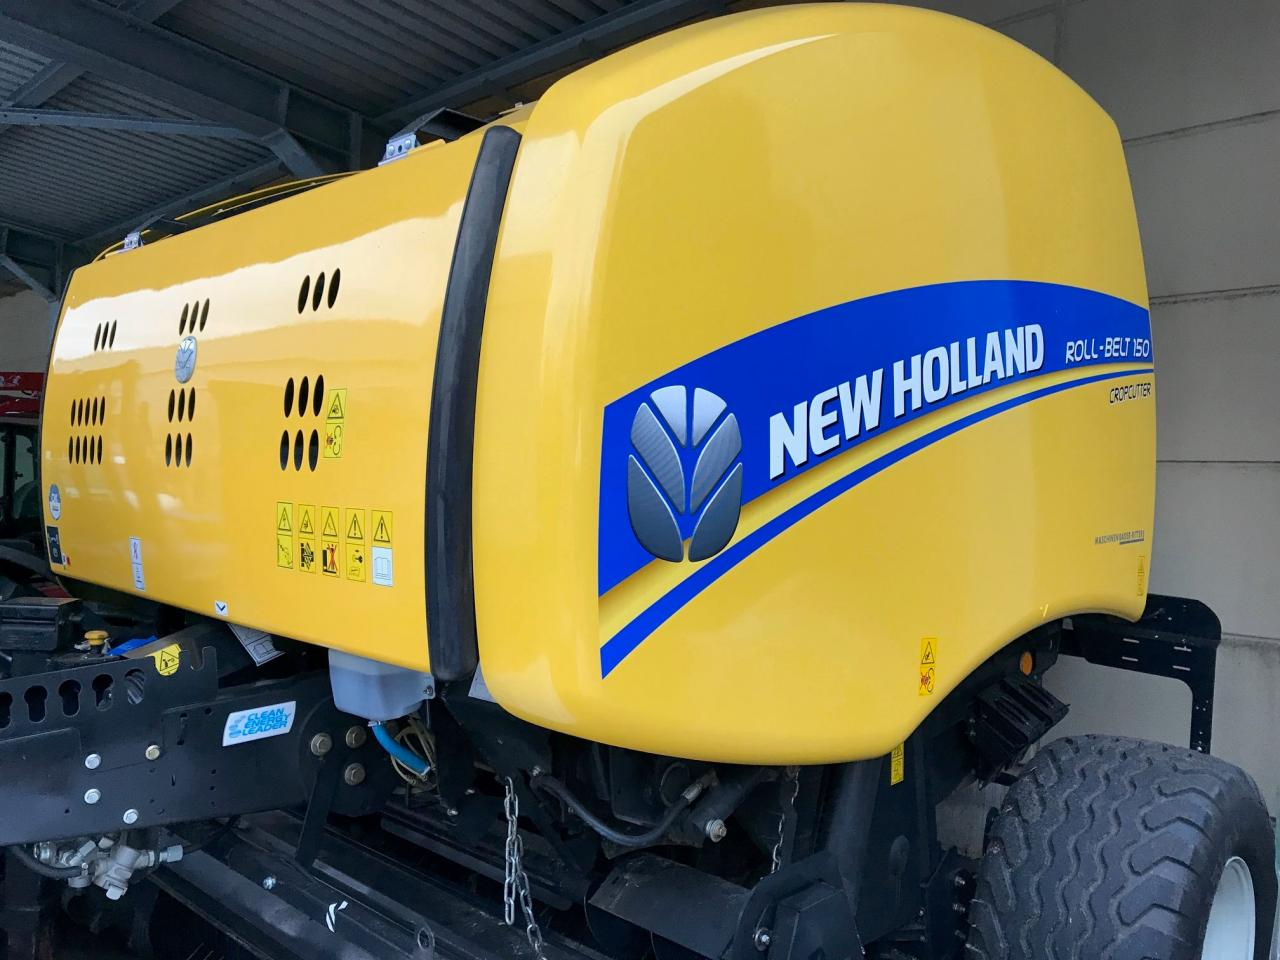 New Holland 150 RBC